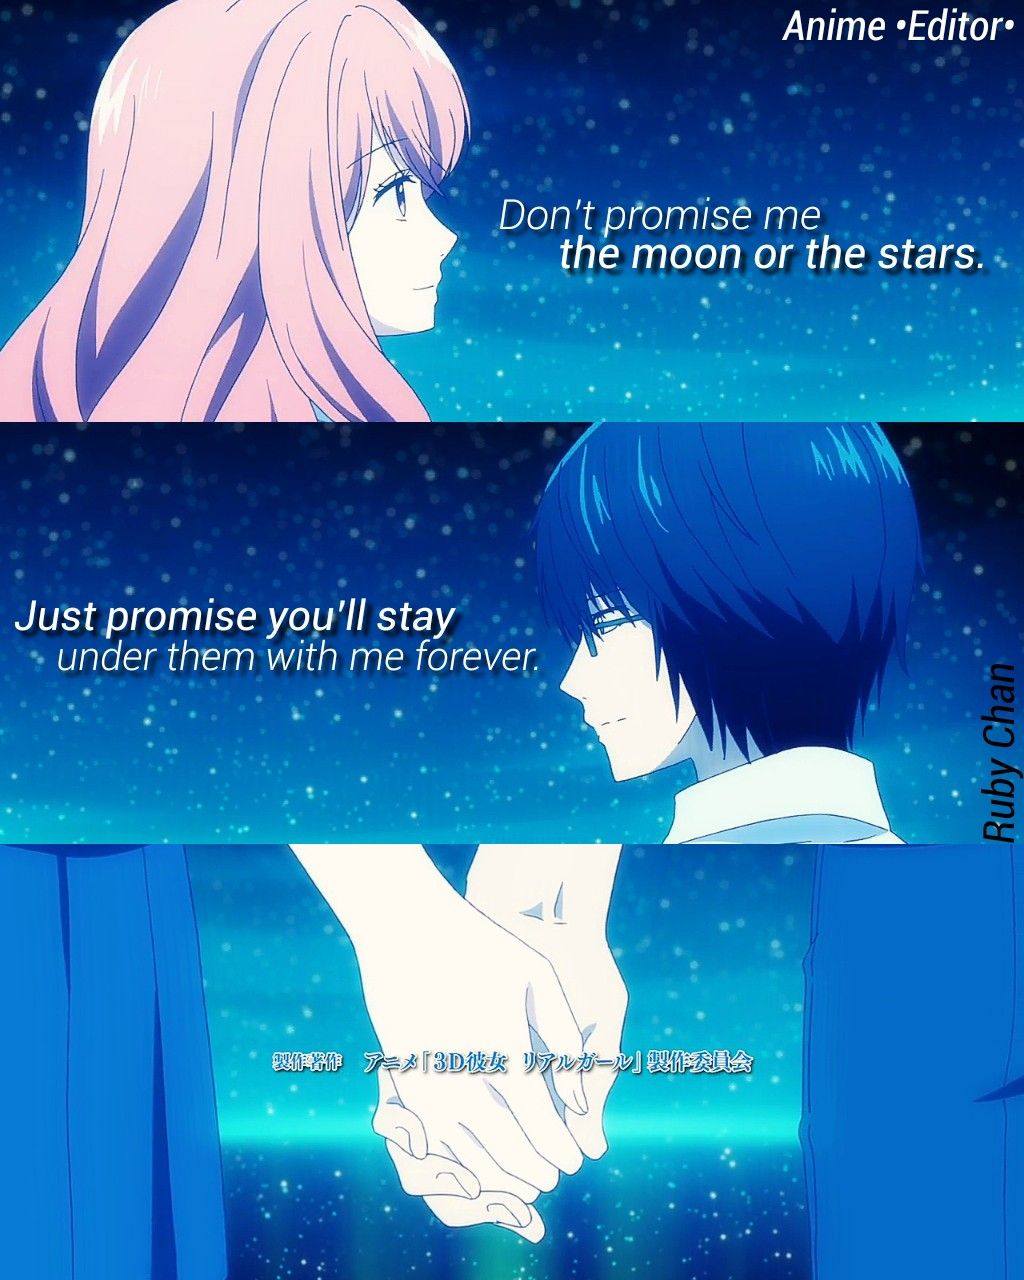 Anime: 10D Kanojo - Real Girl in 10  Anime quotes inspirational